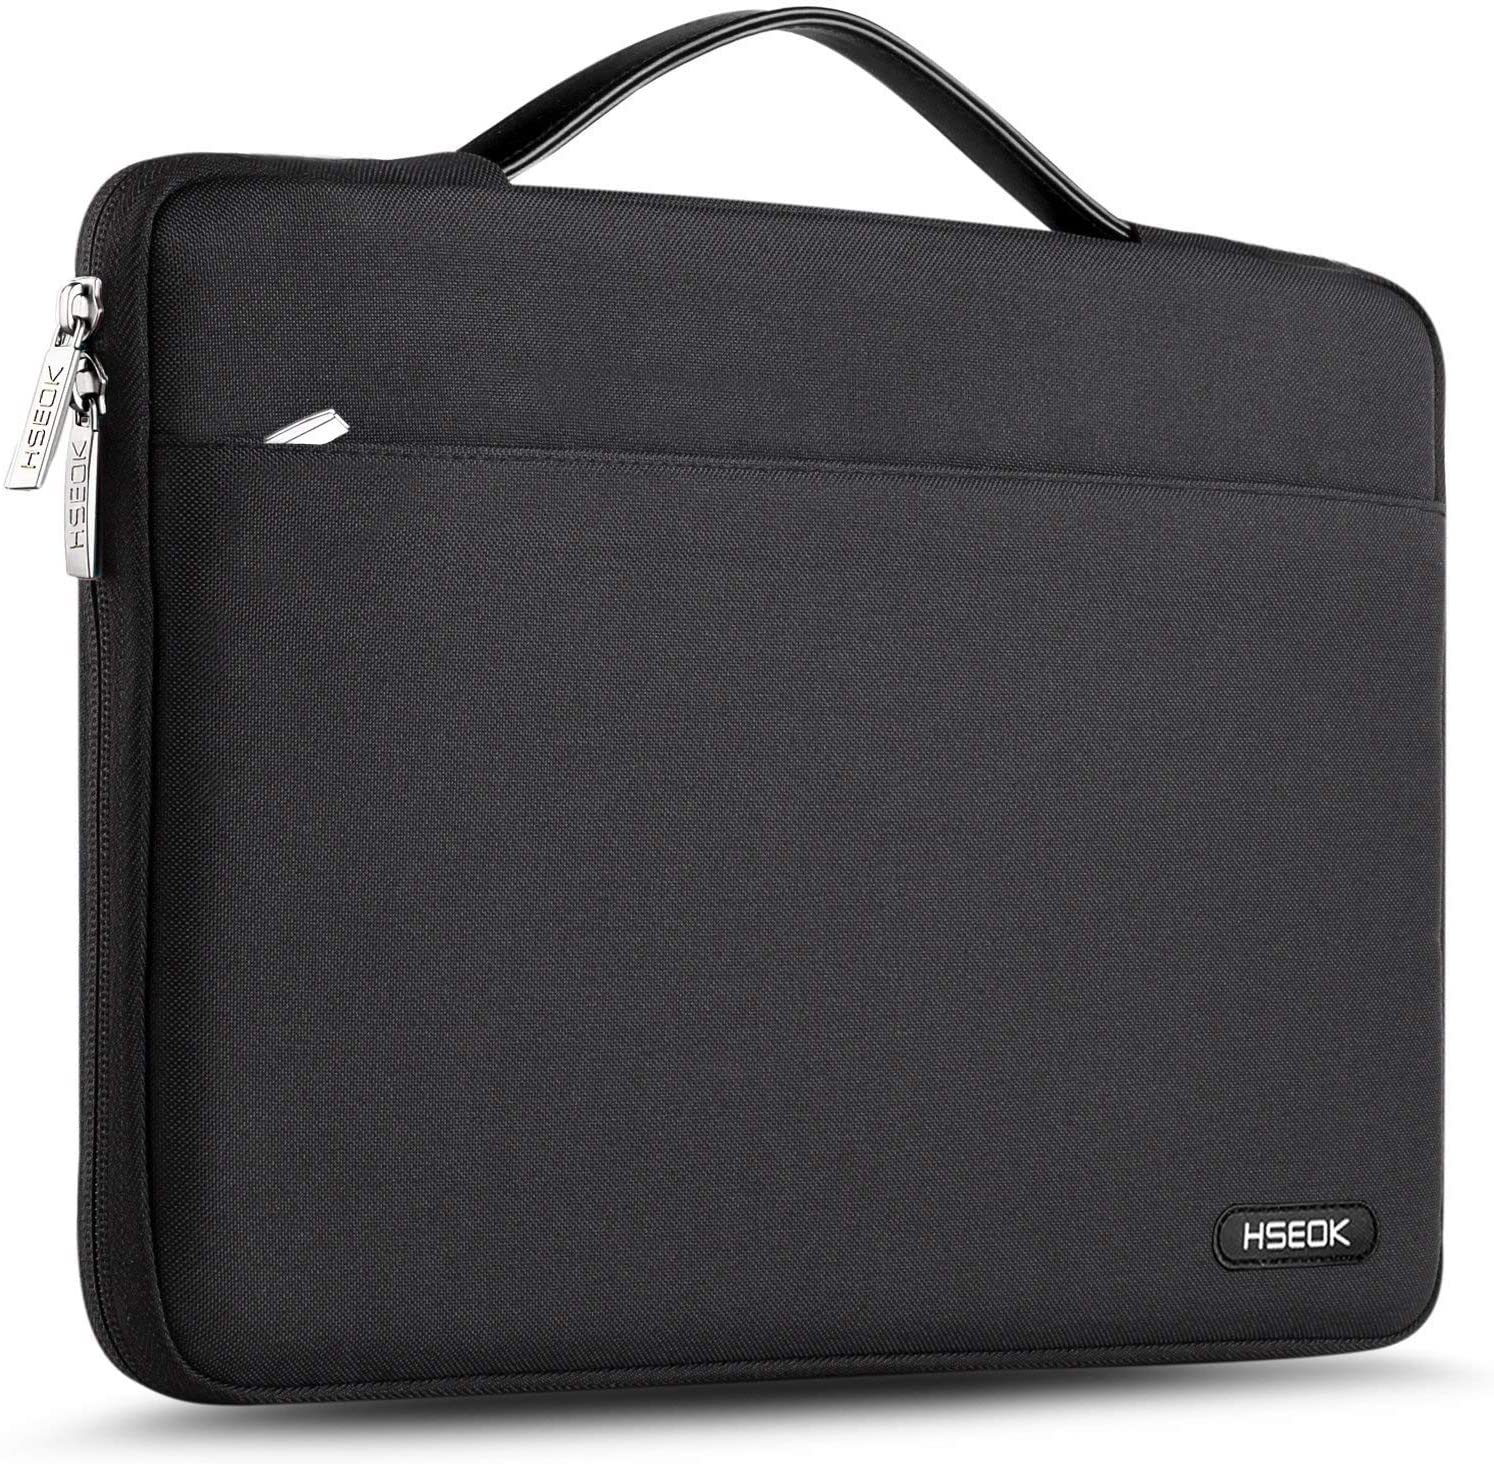 Hseok Laptop Sleeve 15 15.6 16 Inch Case Briefcase, Compatible MacBook Pro 16 15.4 inch, Surface Book 2/1 15 inch Spill-Resistant Handbag For Most Popular 15-16 inch Notebooks, Deep Black